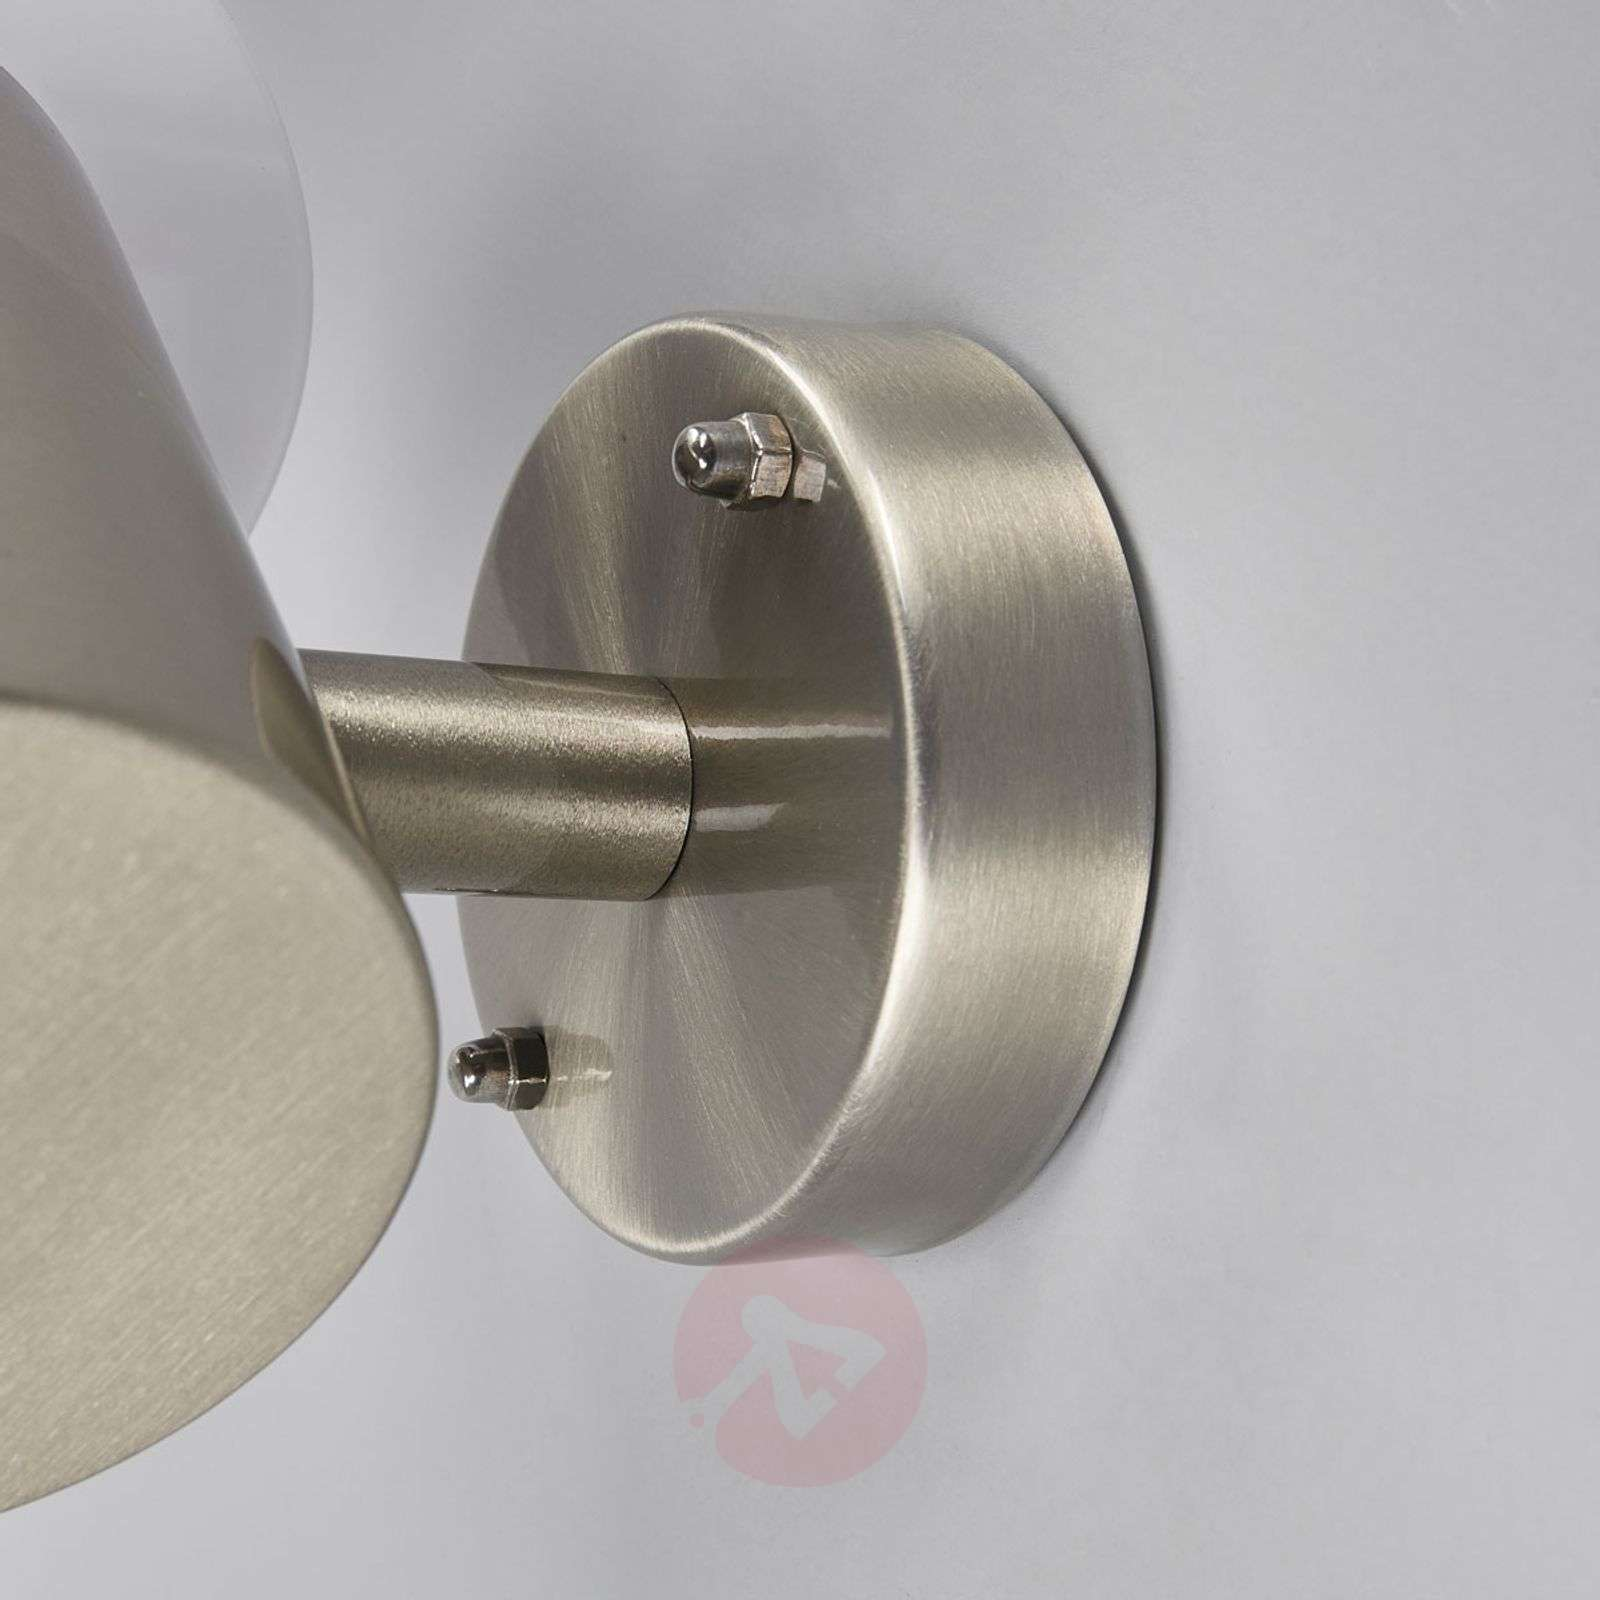 Roxy stainless steel outdoor wall light with LEDs-9988119-01